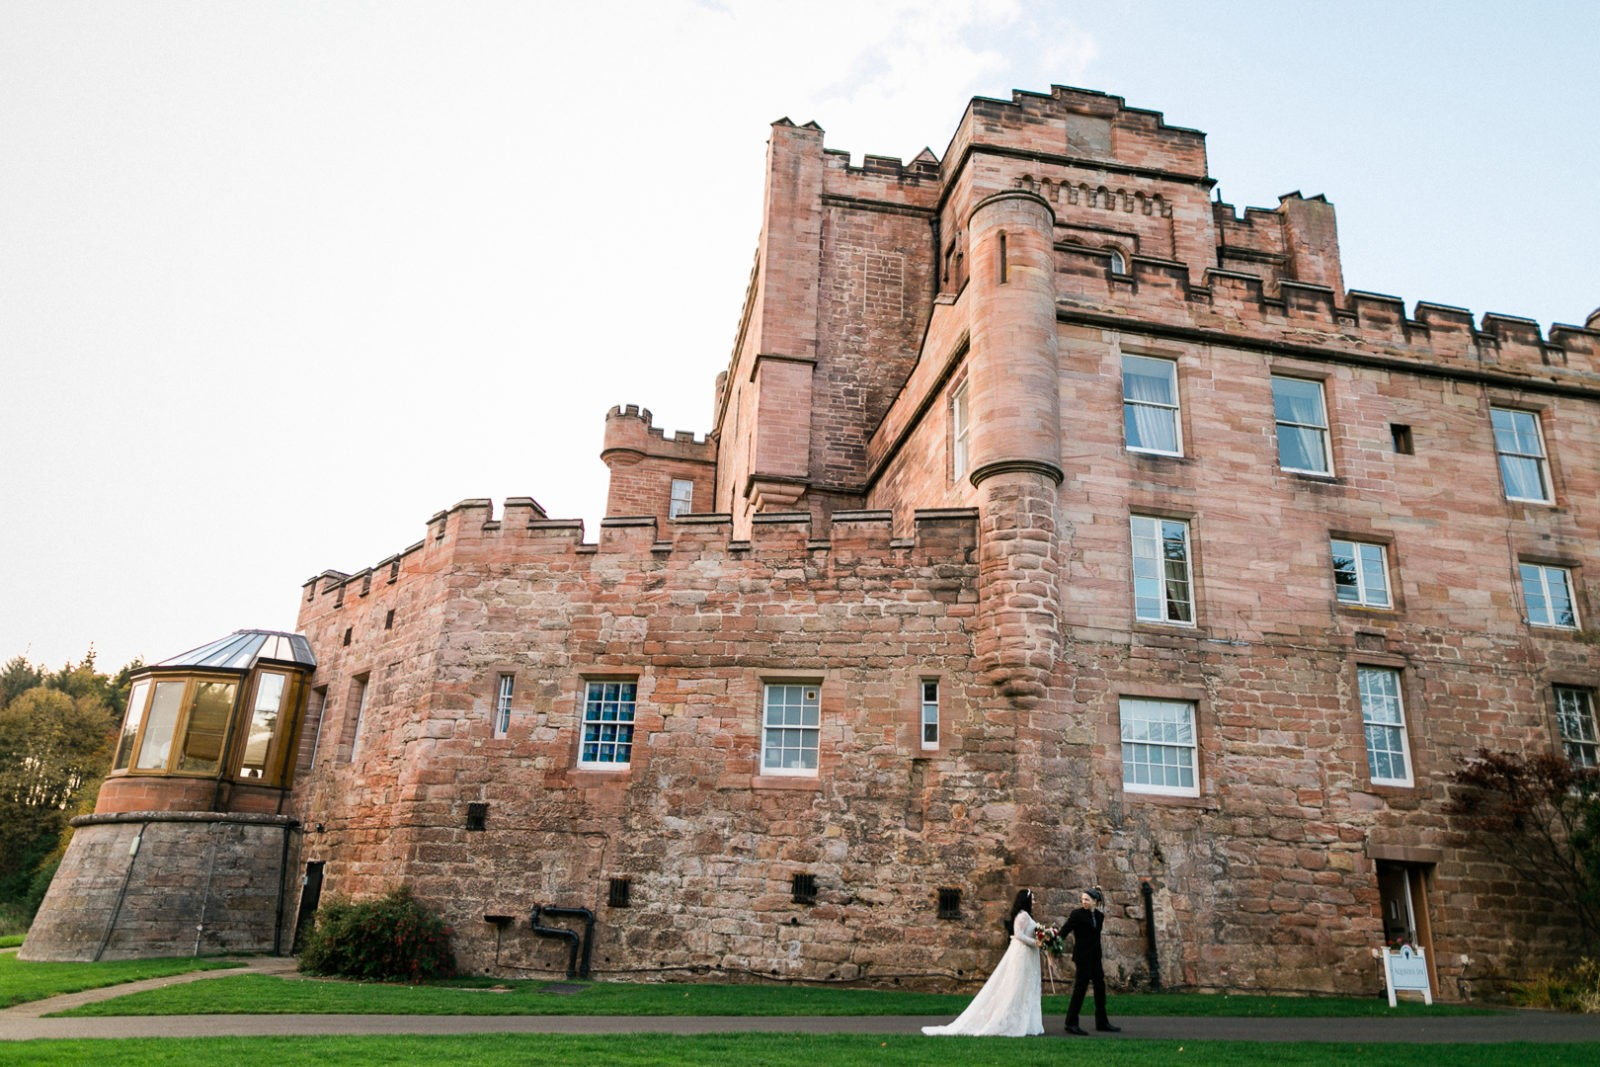 Wedding at Dalhousie Castle - Jen Mathews My Beauty Bunny Wedding in Scotland- Hair and Makeup by AMM Team - Photography by Lauren McGlynn